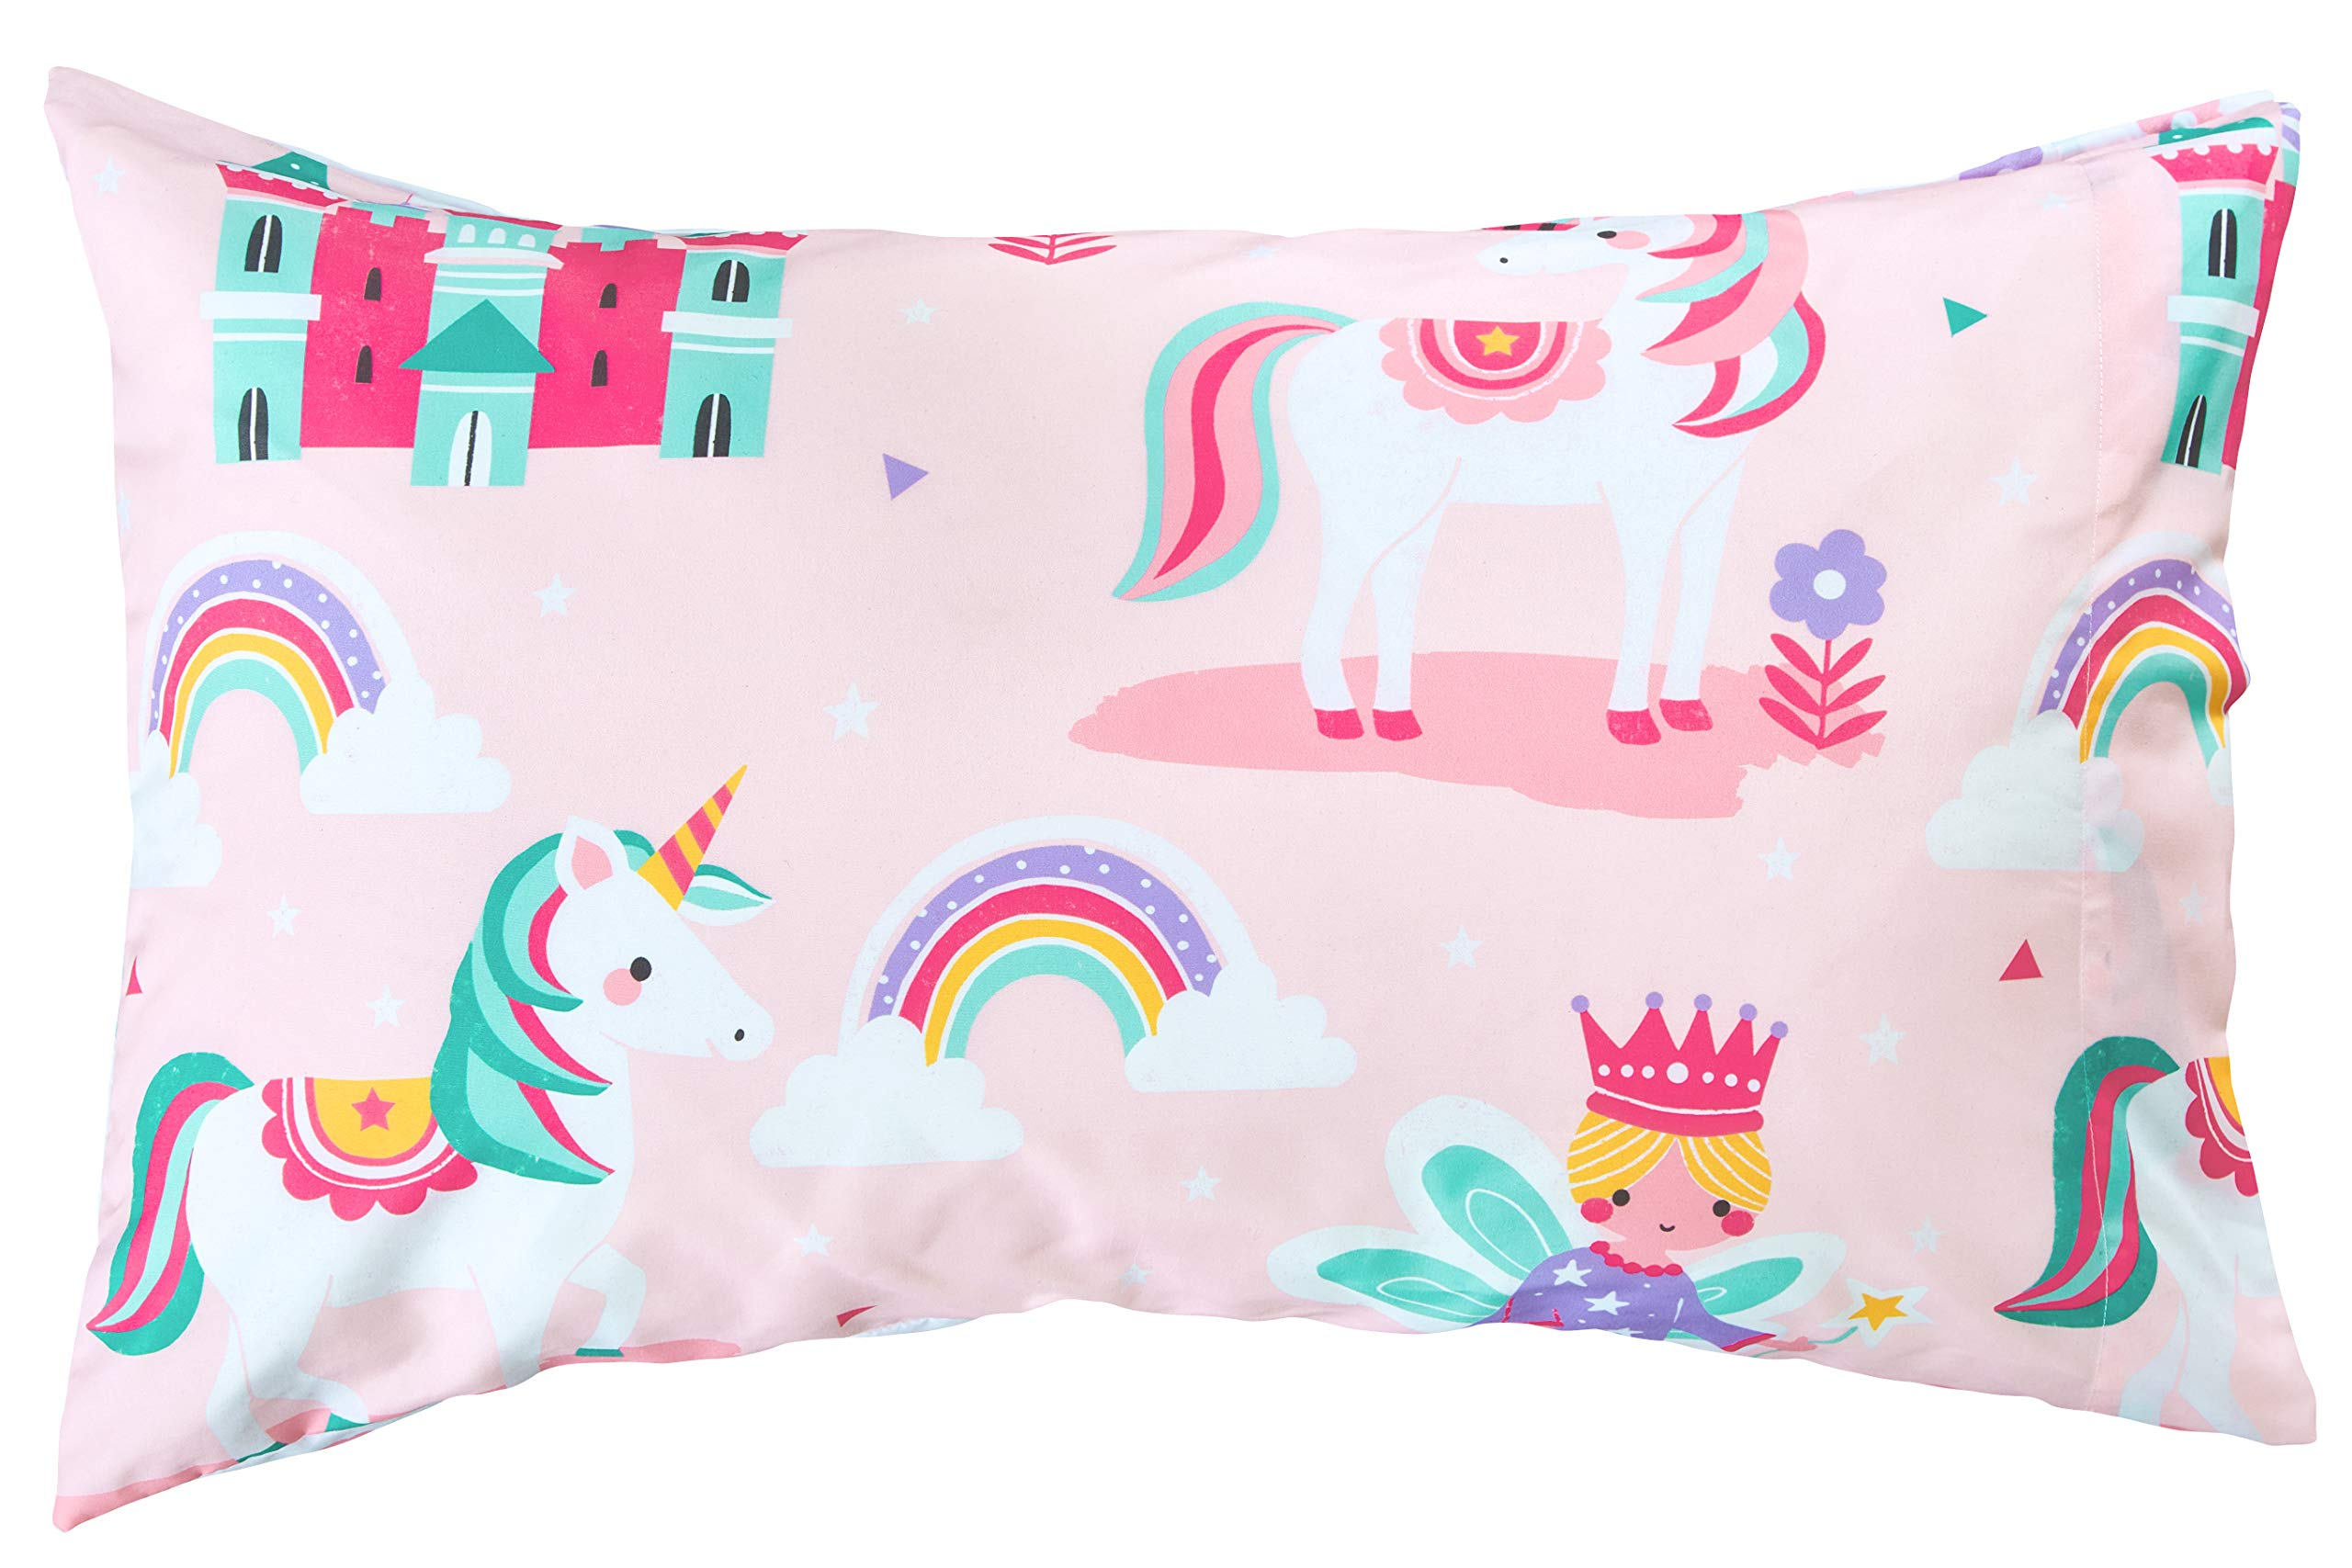 Bloomsbury Mill - 4 Piece Toddler Comforter Set - Magic Unicorn, Fairy Princess & Enchanted Castle - Pink - Kids Bedding… 6